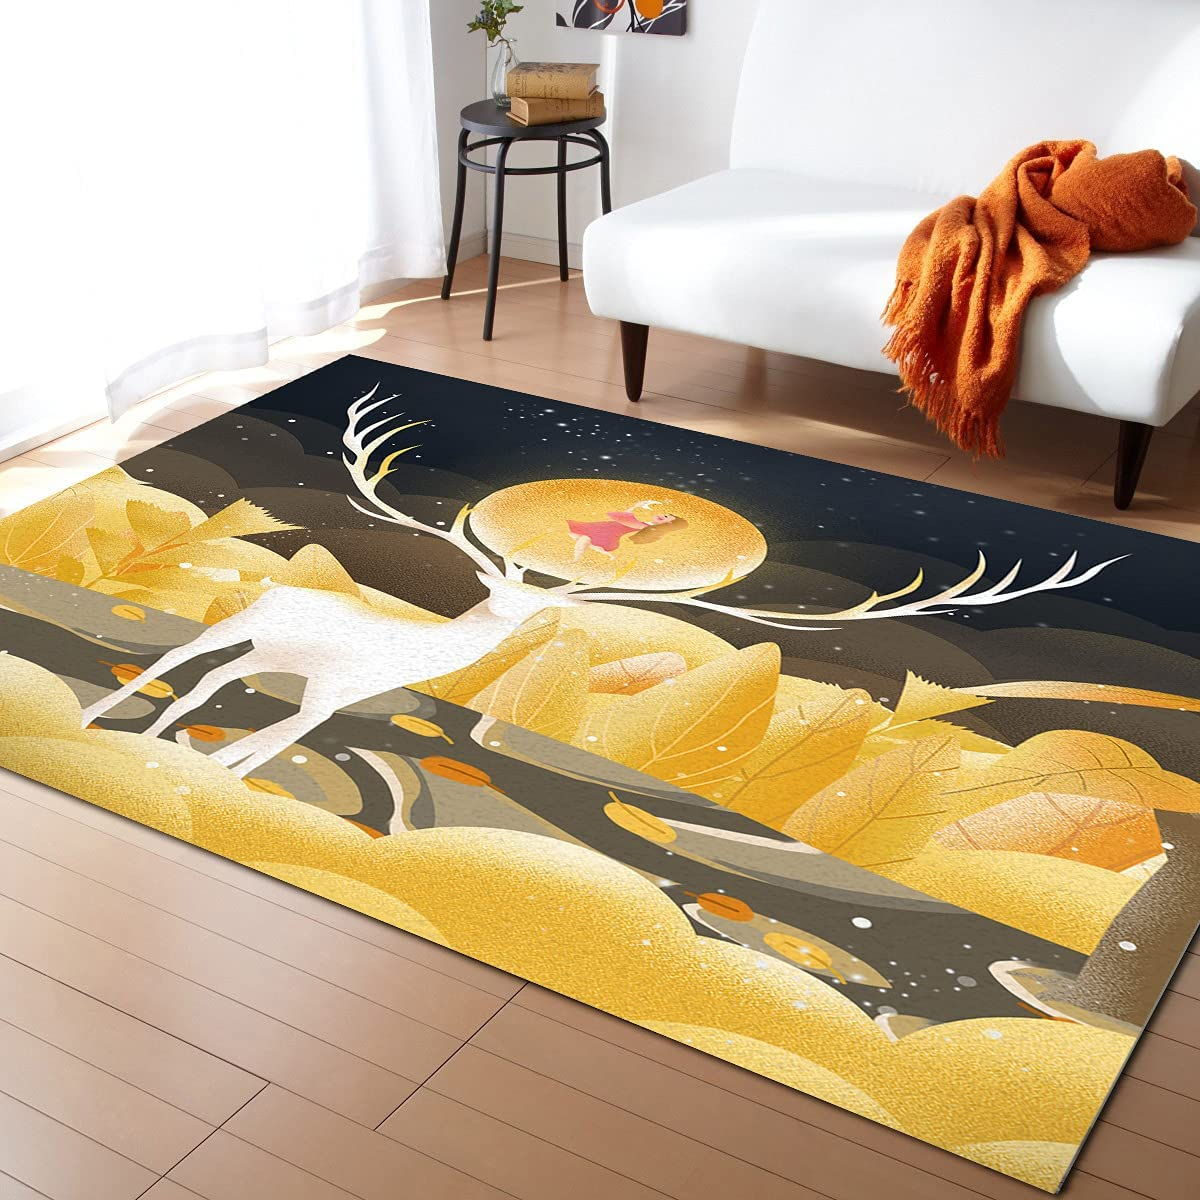 Olivefox Spasm Bombing free shipping price 5x7 Feet Area Rug Floor Mat Deer Mo The and Girl Under